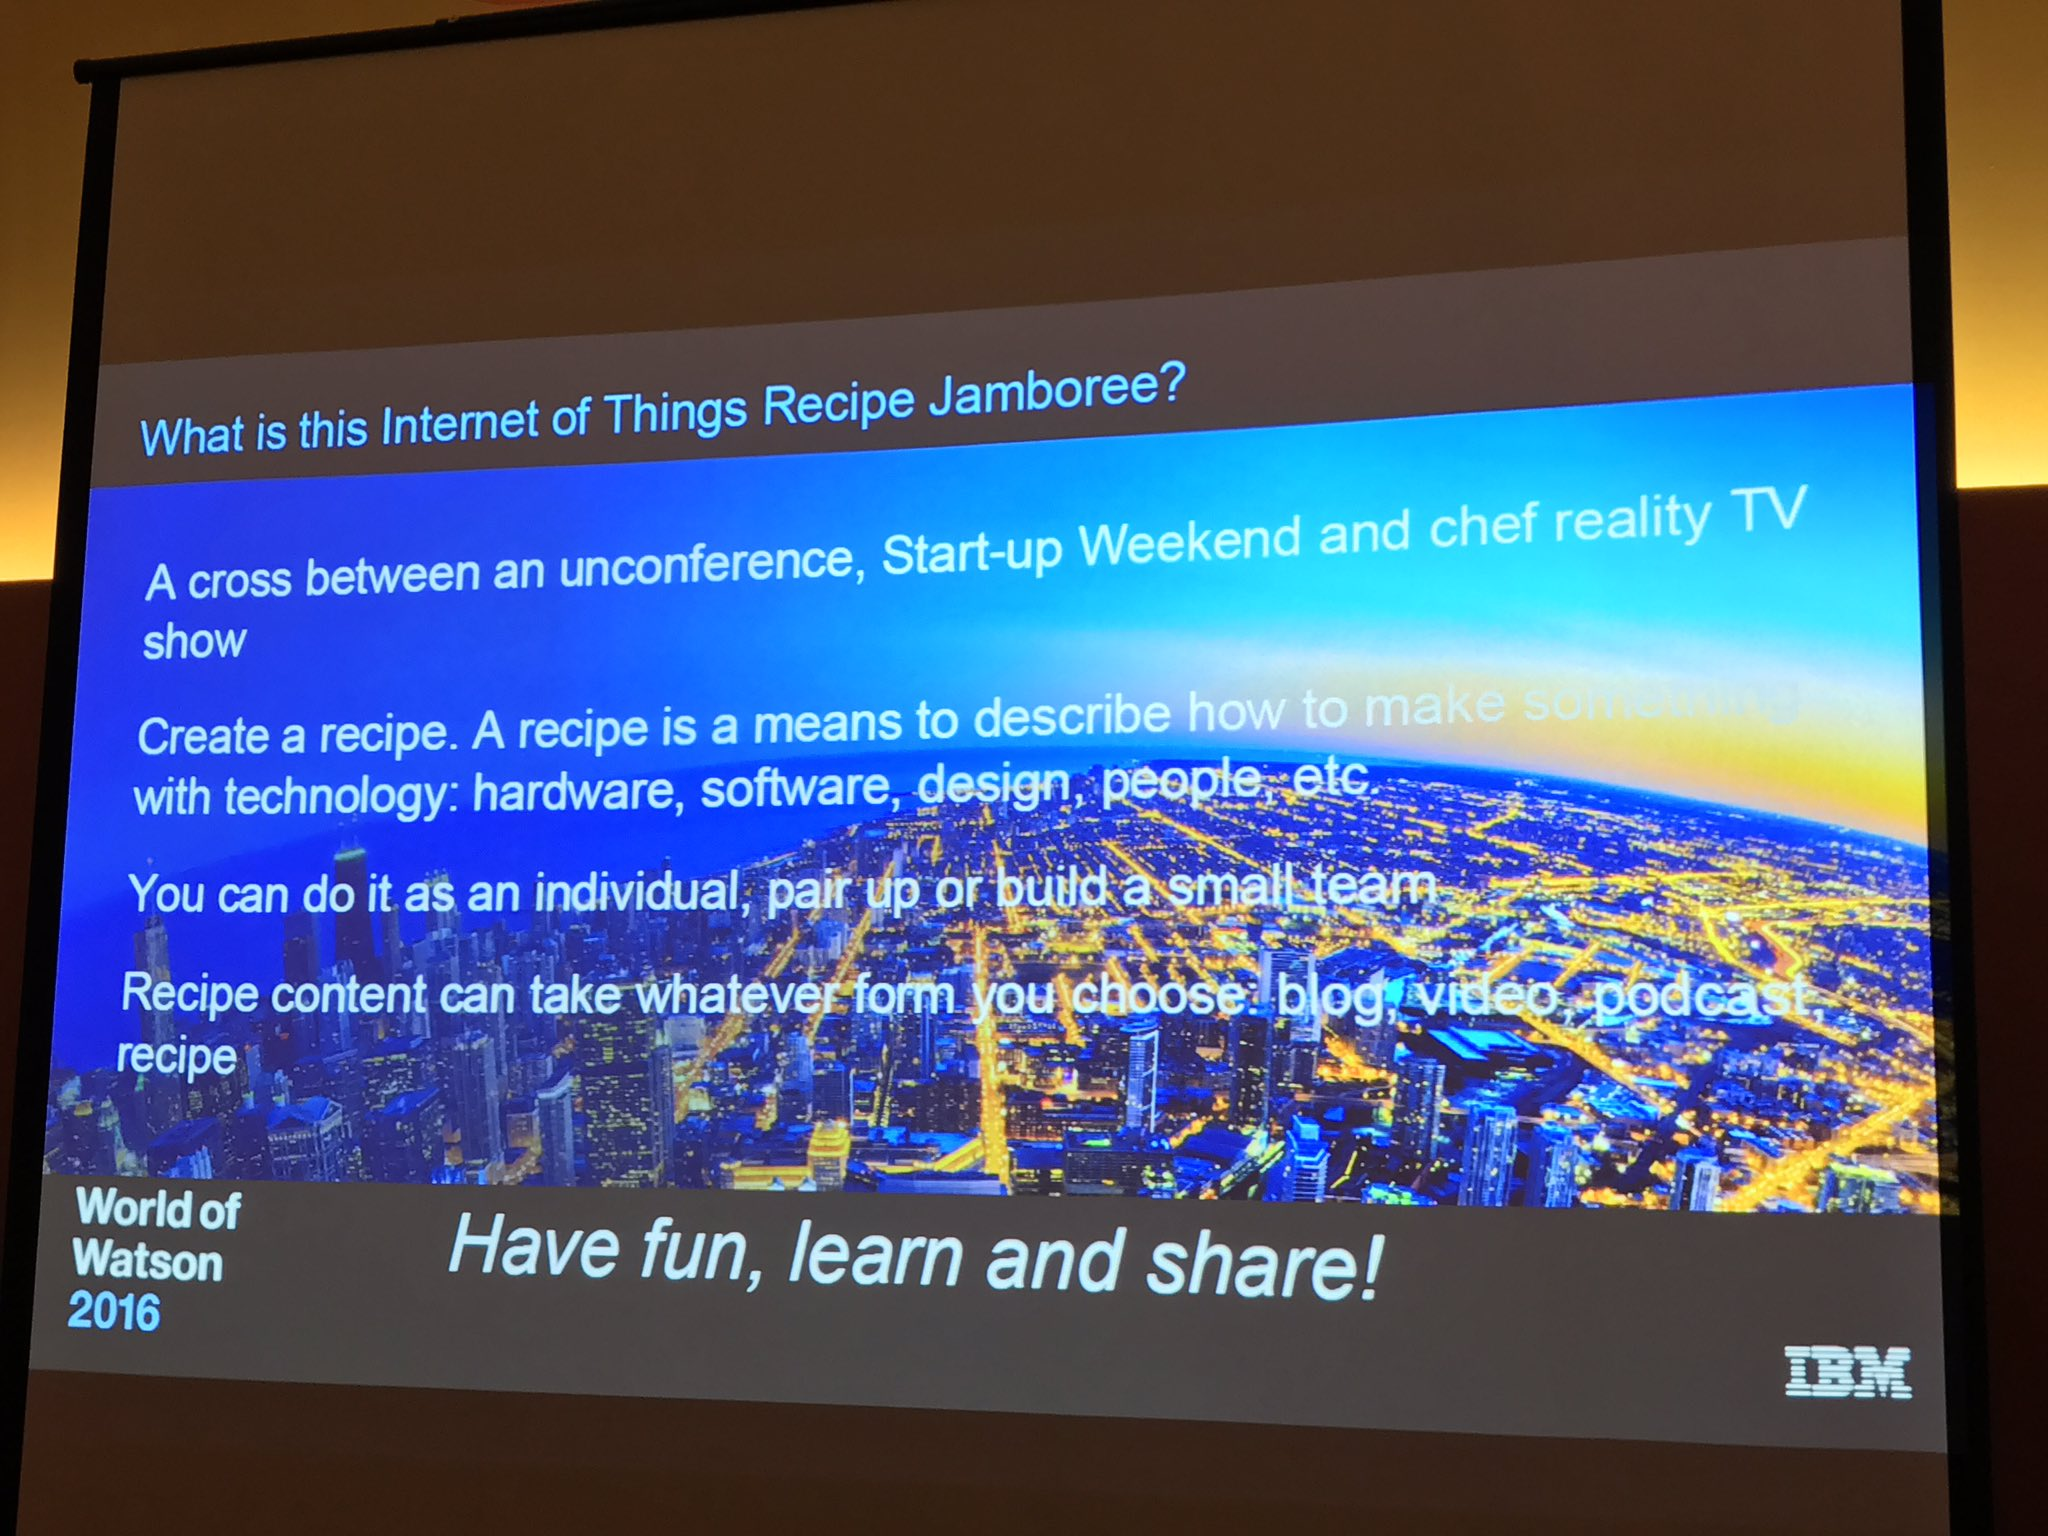 The #IoT Jamboree is a combo of unconference + startup weekend + chef reality show. We're asked to build something over next 2 days. #ibmwow https://t.co/Oe4DmaWsQY